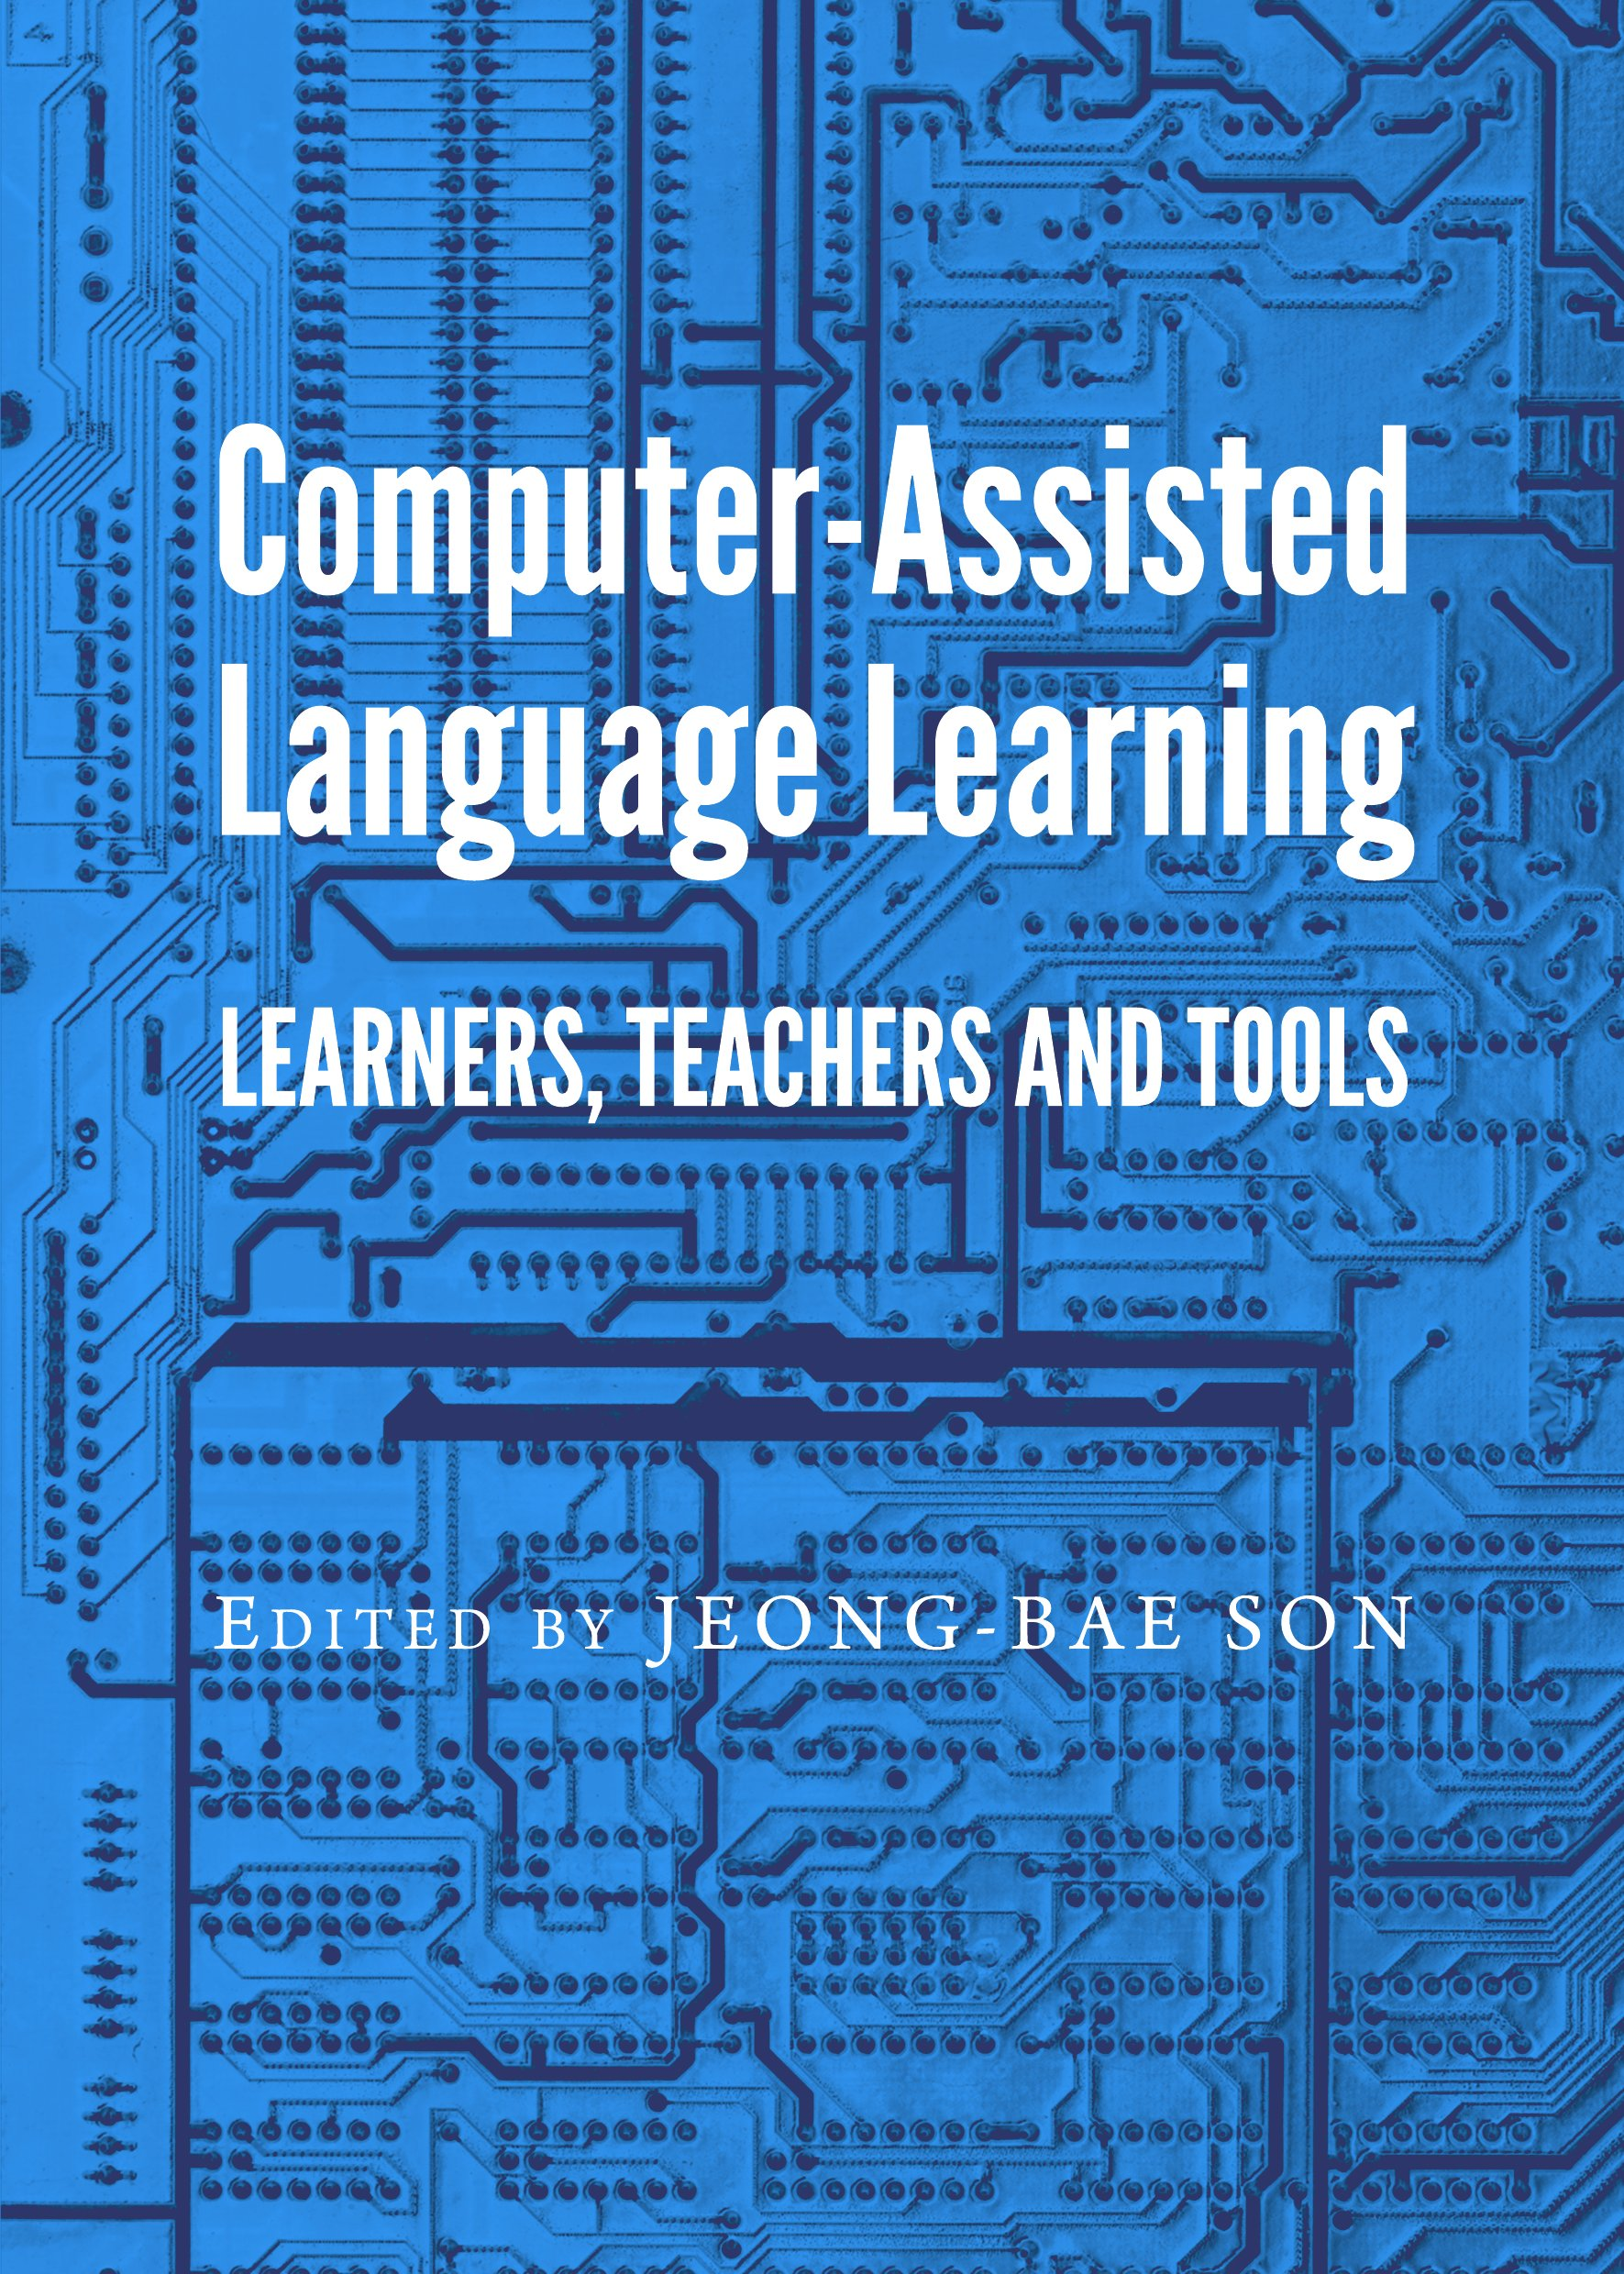 Computer-Assisted Language Learning: Learners, Teachers and Tools